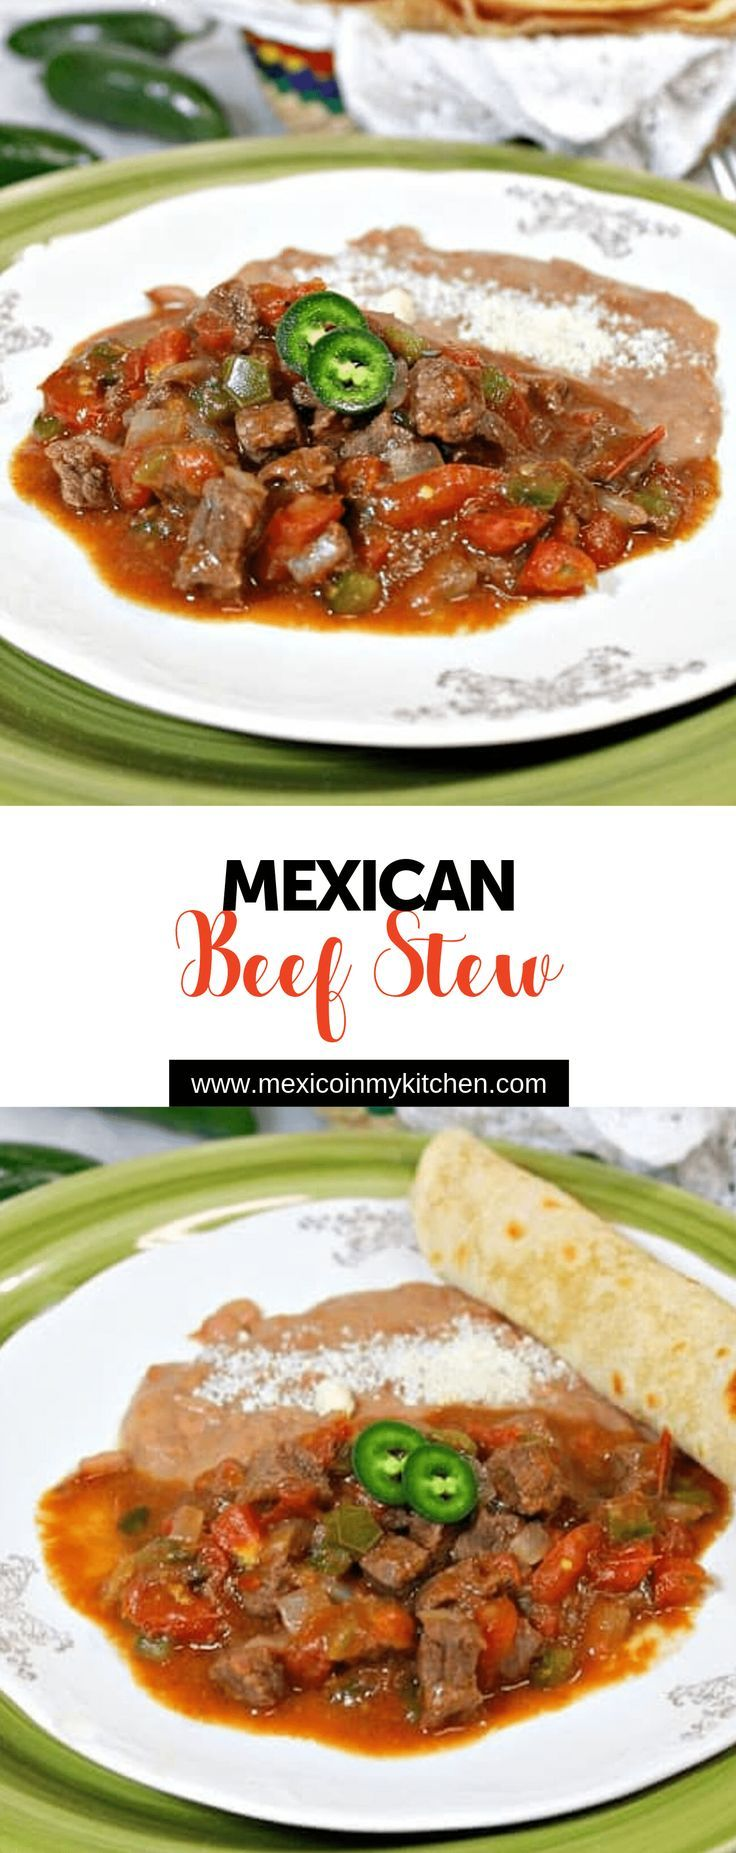 Easy Mexican Beef Stew to serve with flour tortillas | Mexican Recipes